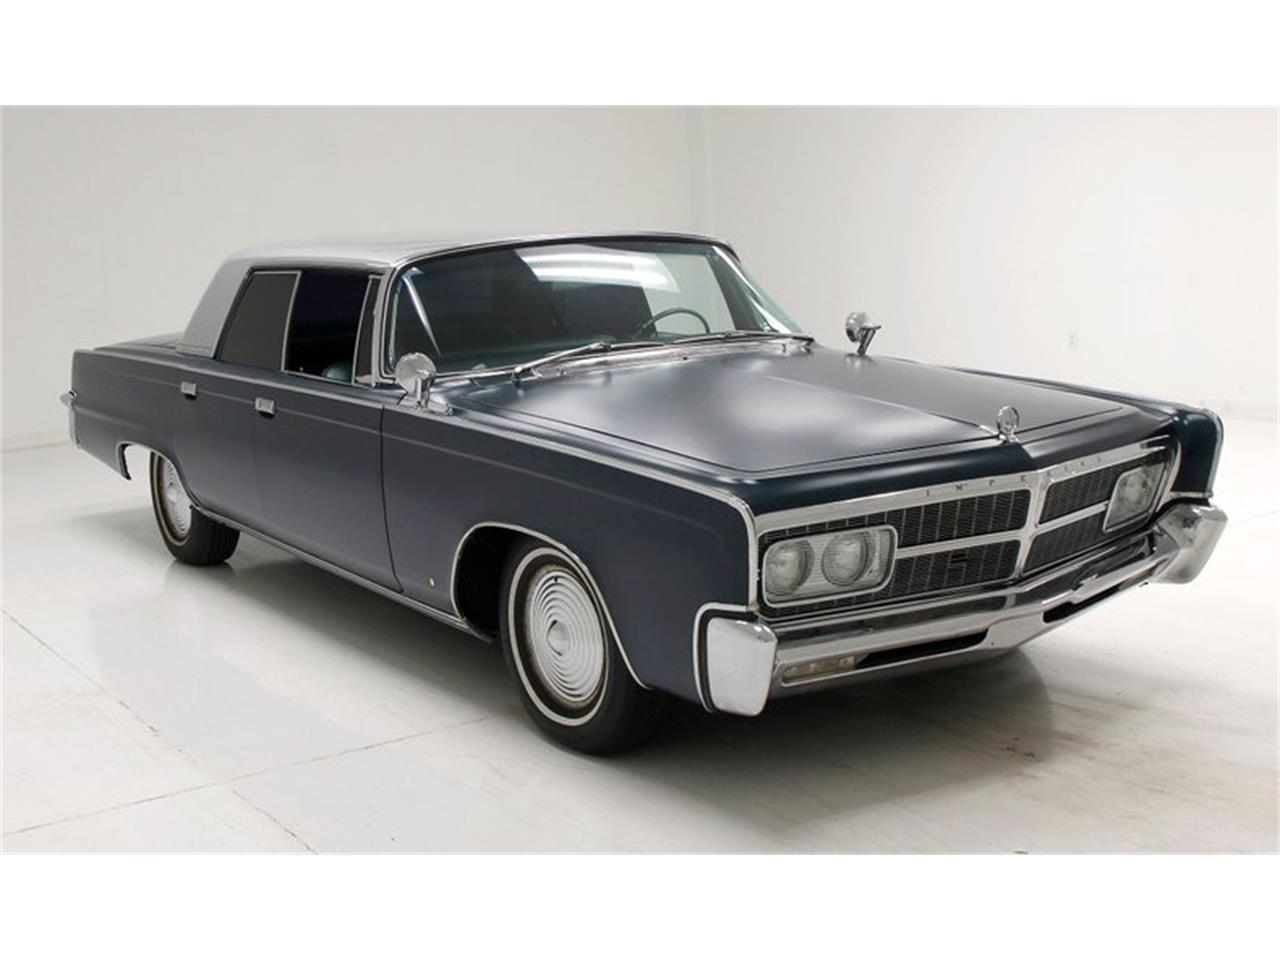 1965 Chrysler Imperial Crown (CC-1304523) for sale in Morgantown, Pennsylvania